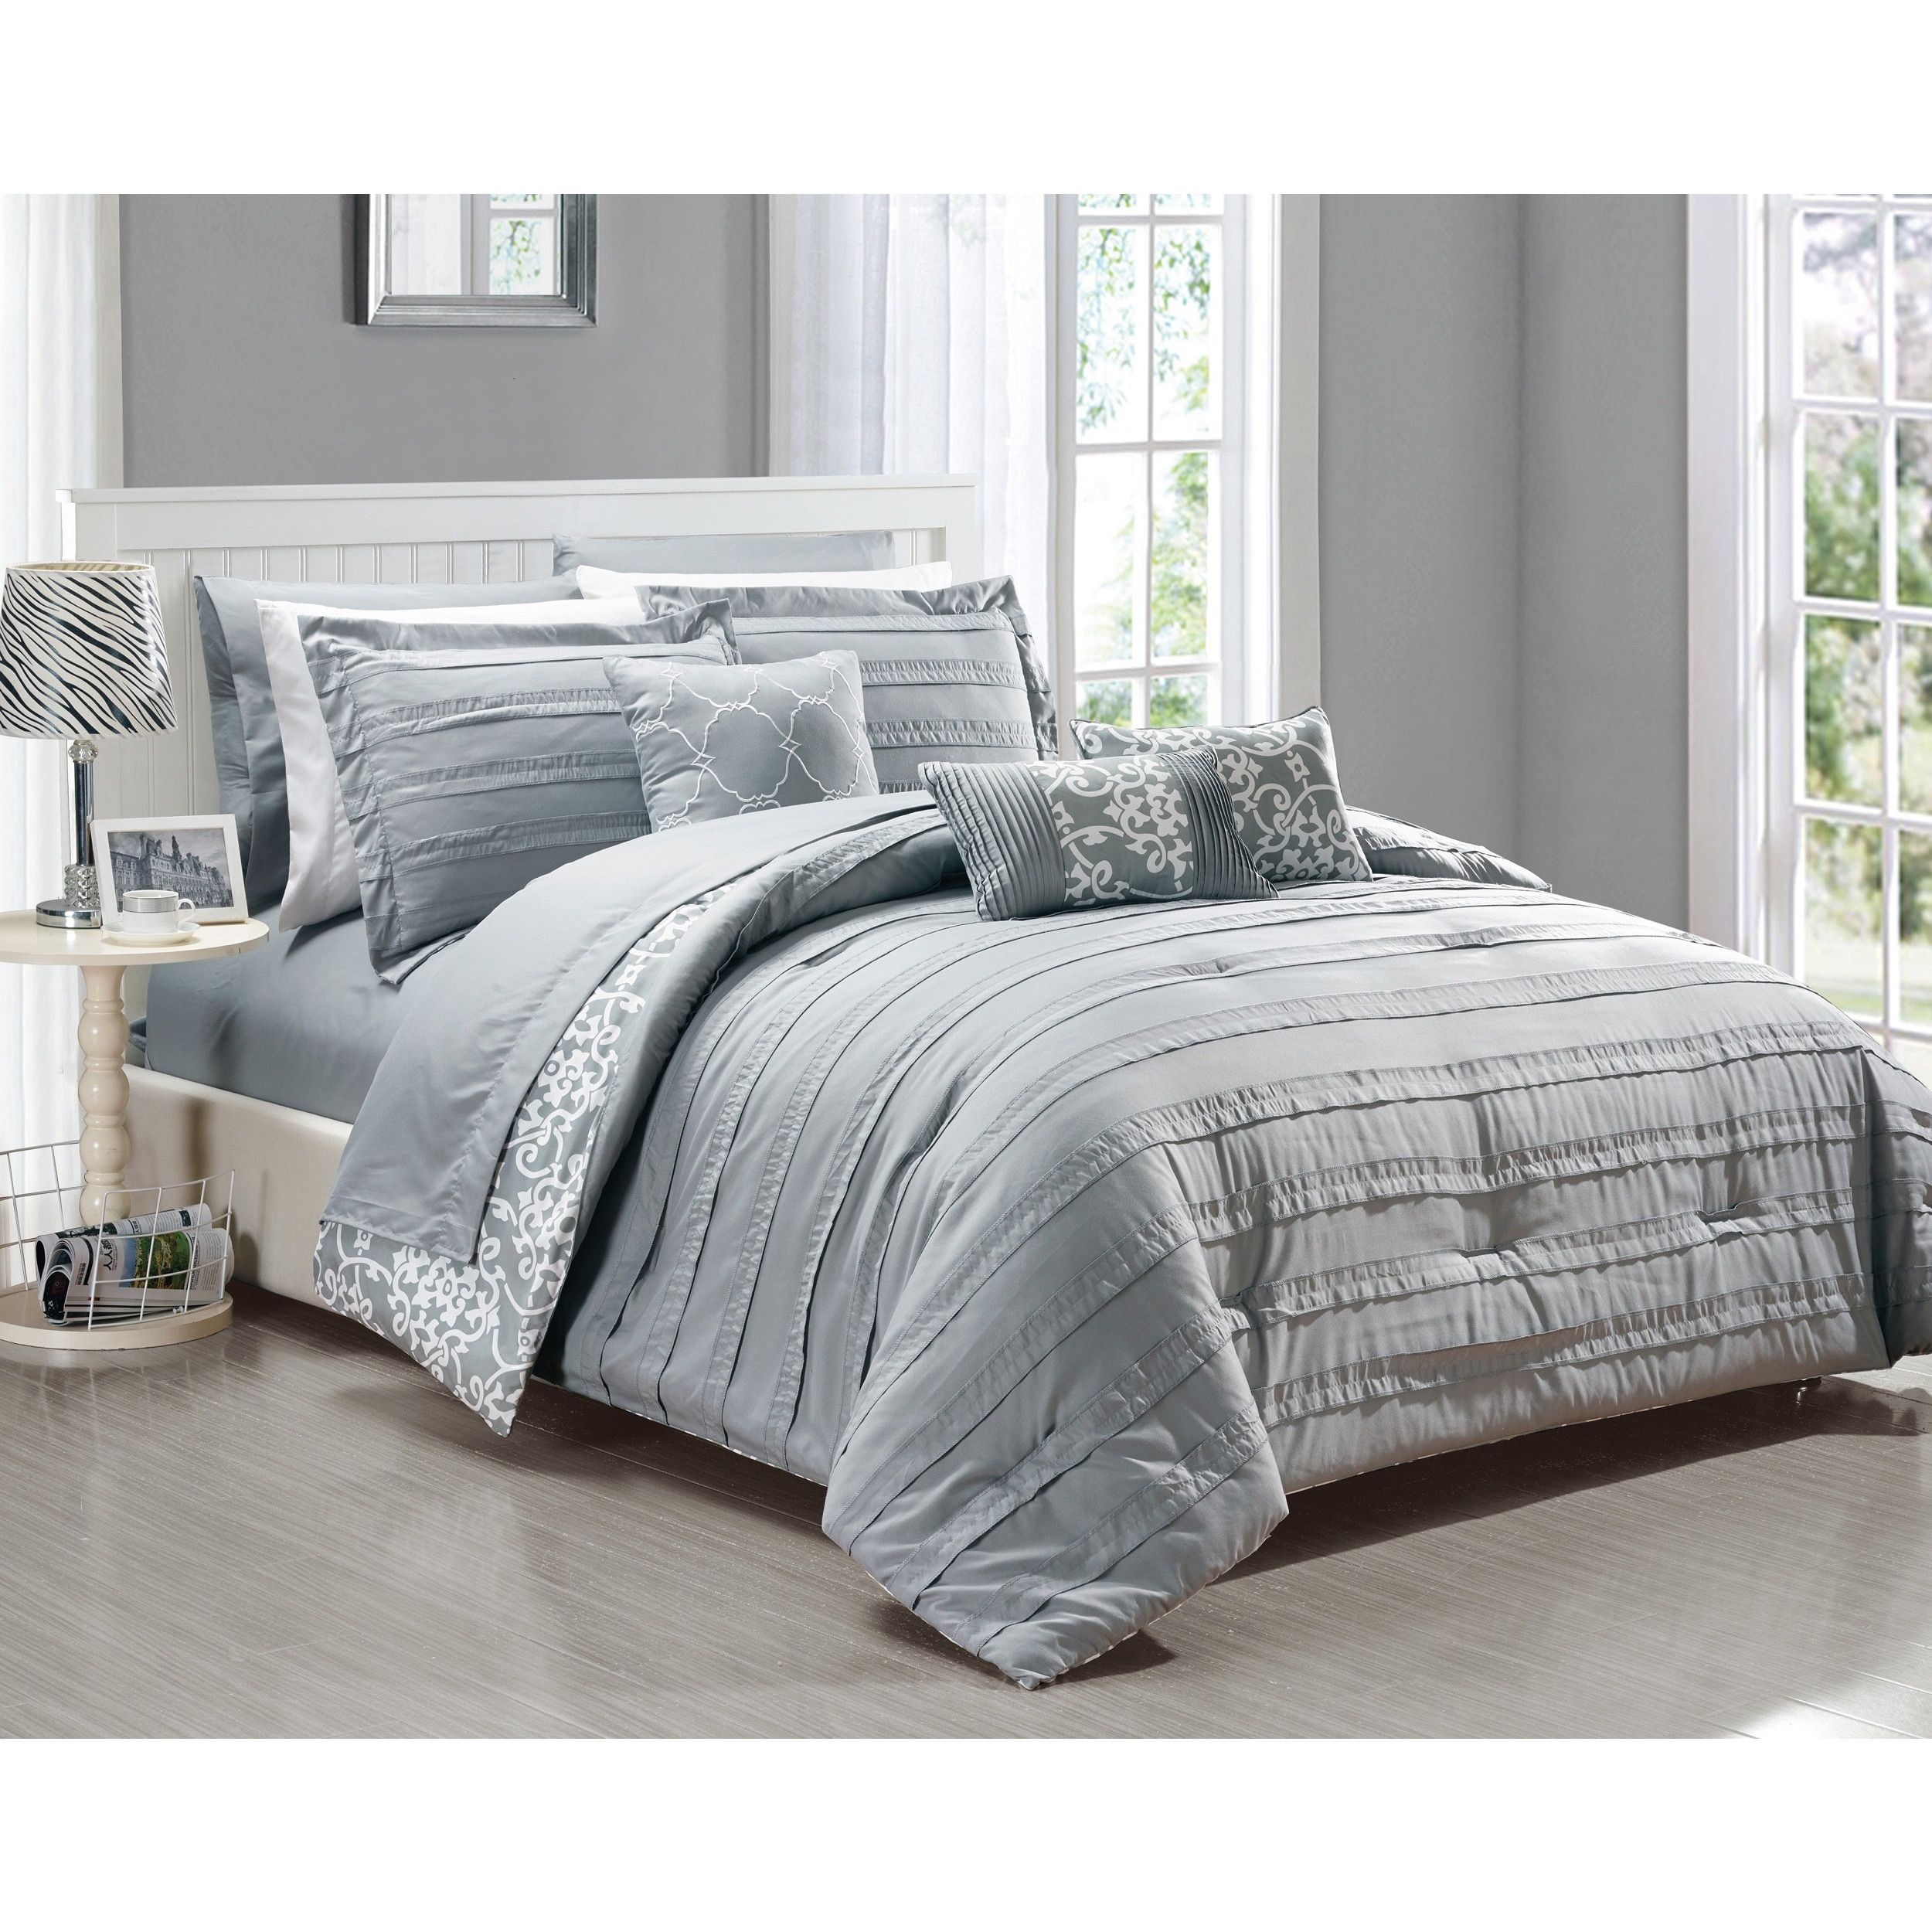 Chic Home Zarina BIB Comforter 10-Piece Set